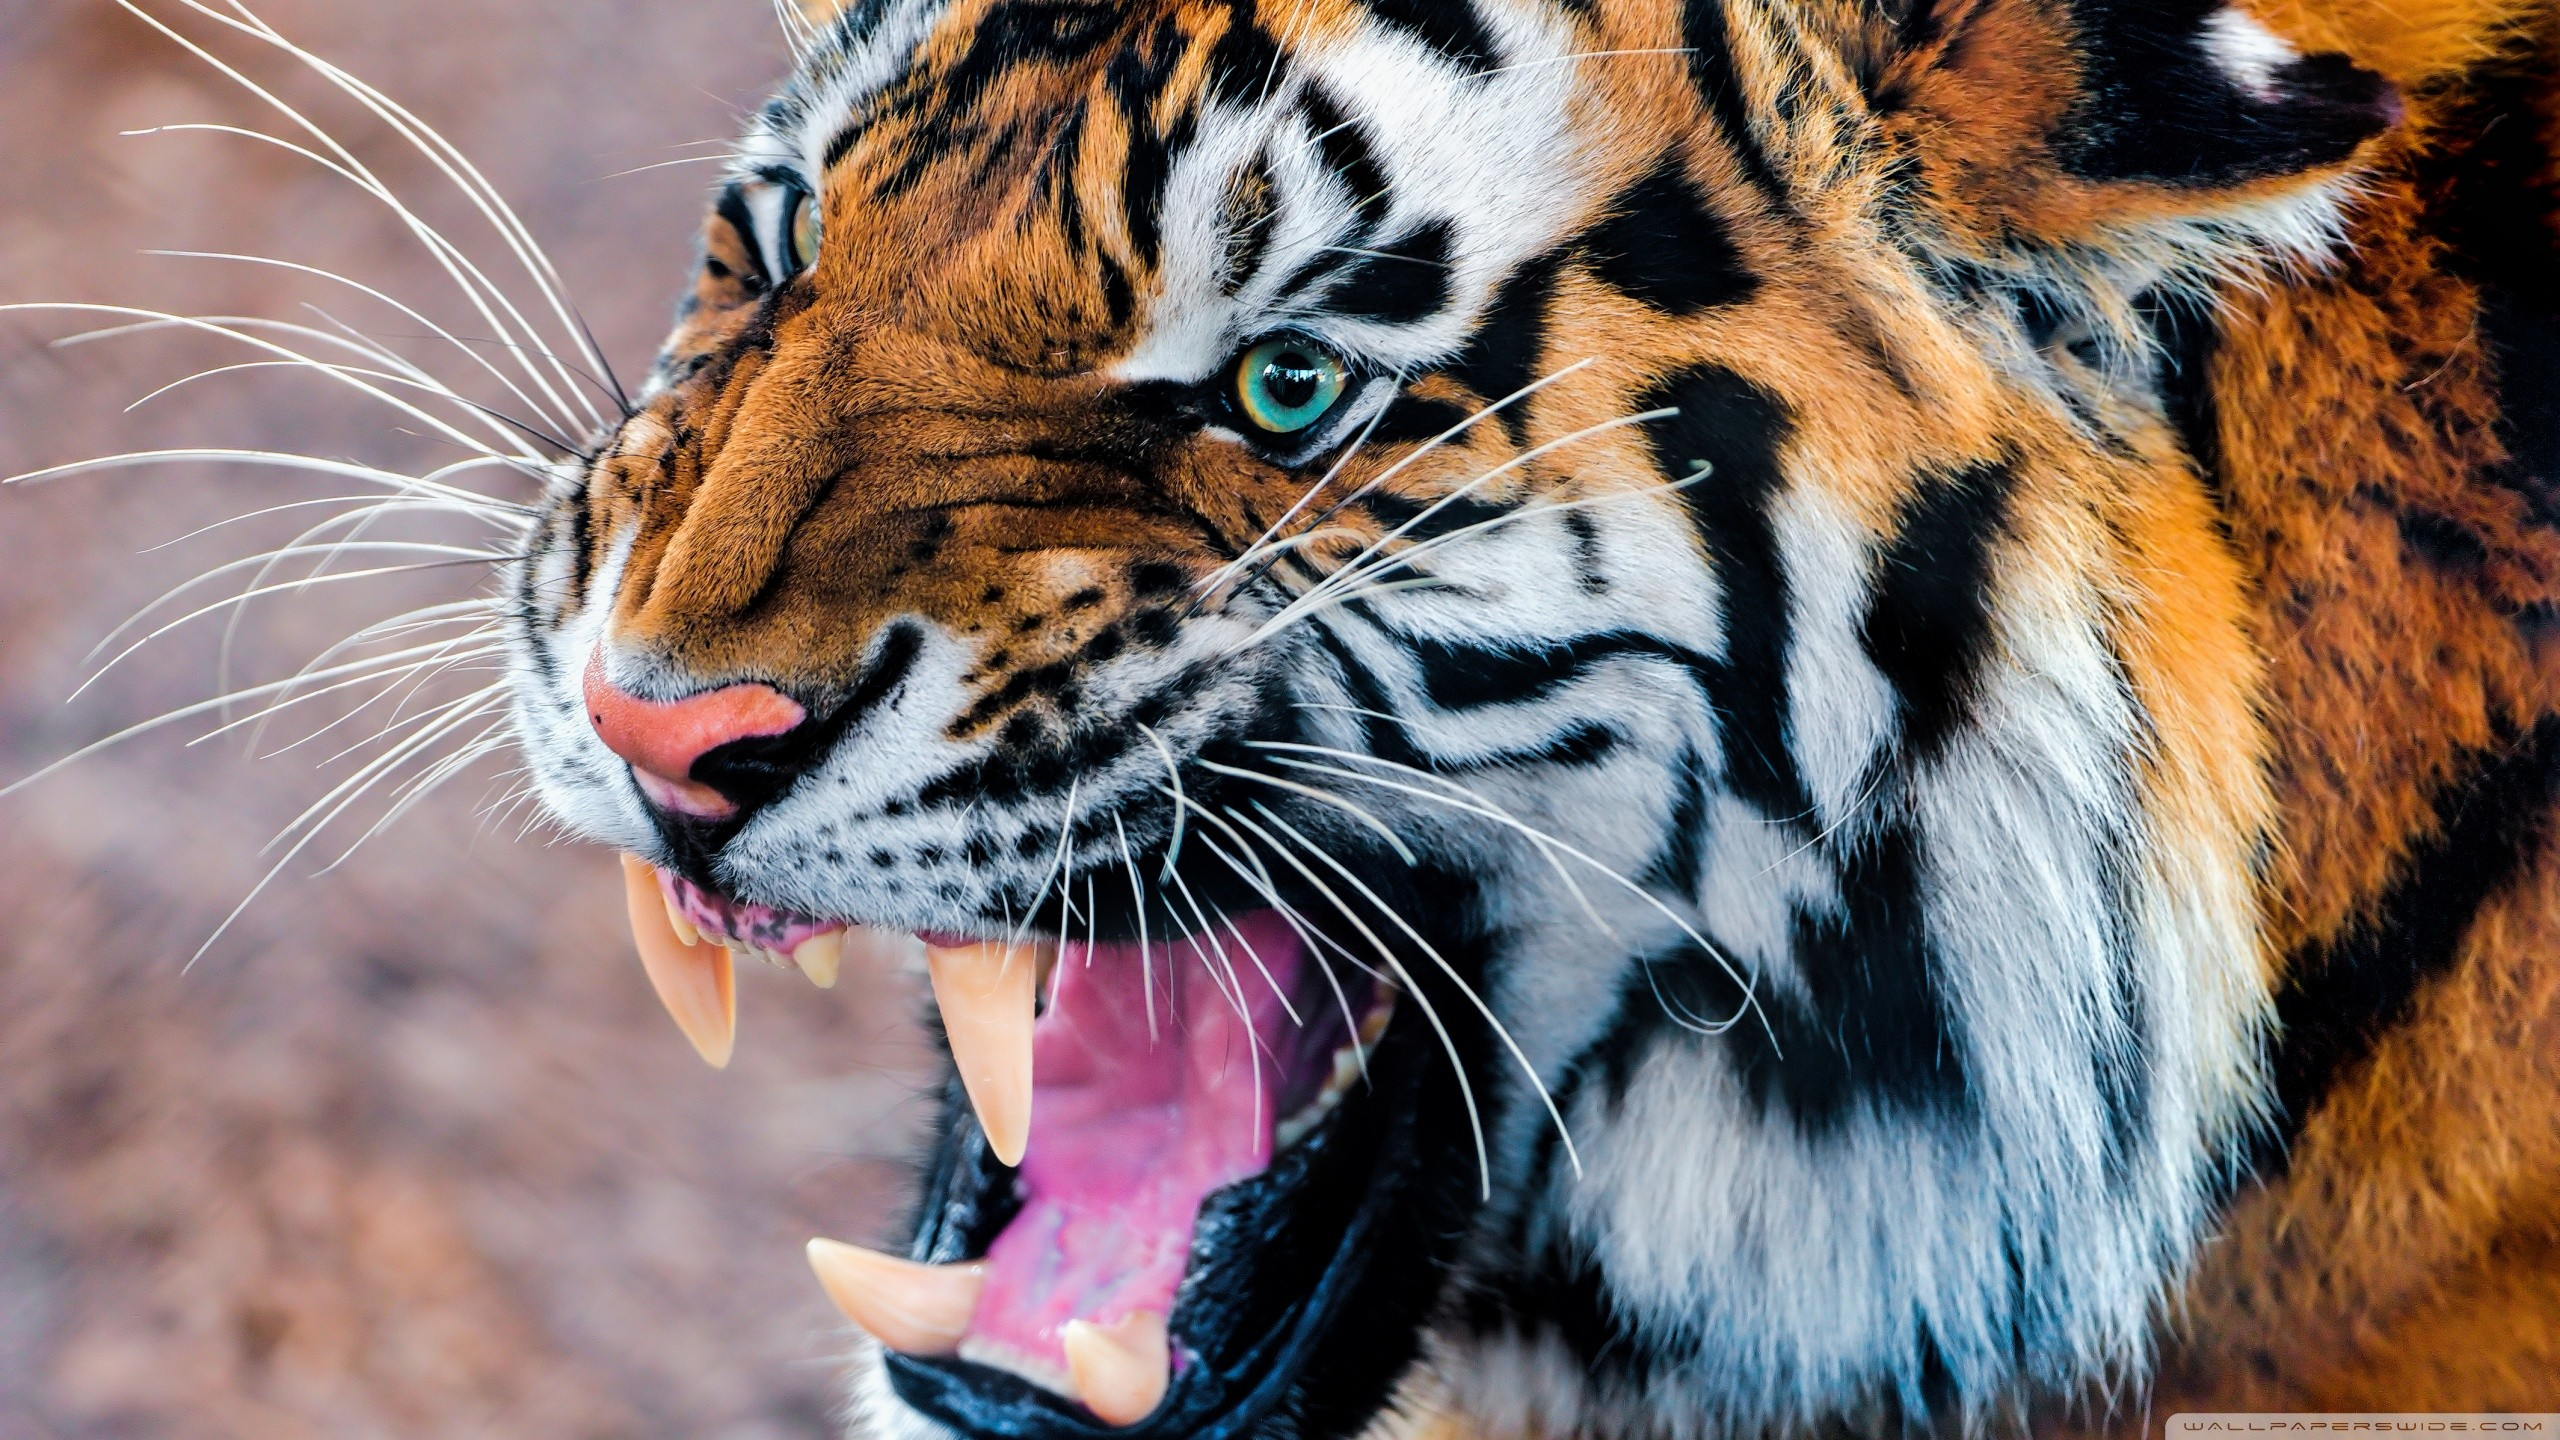 Black And White Tiger Wallpaper 60 Images